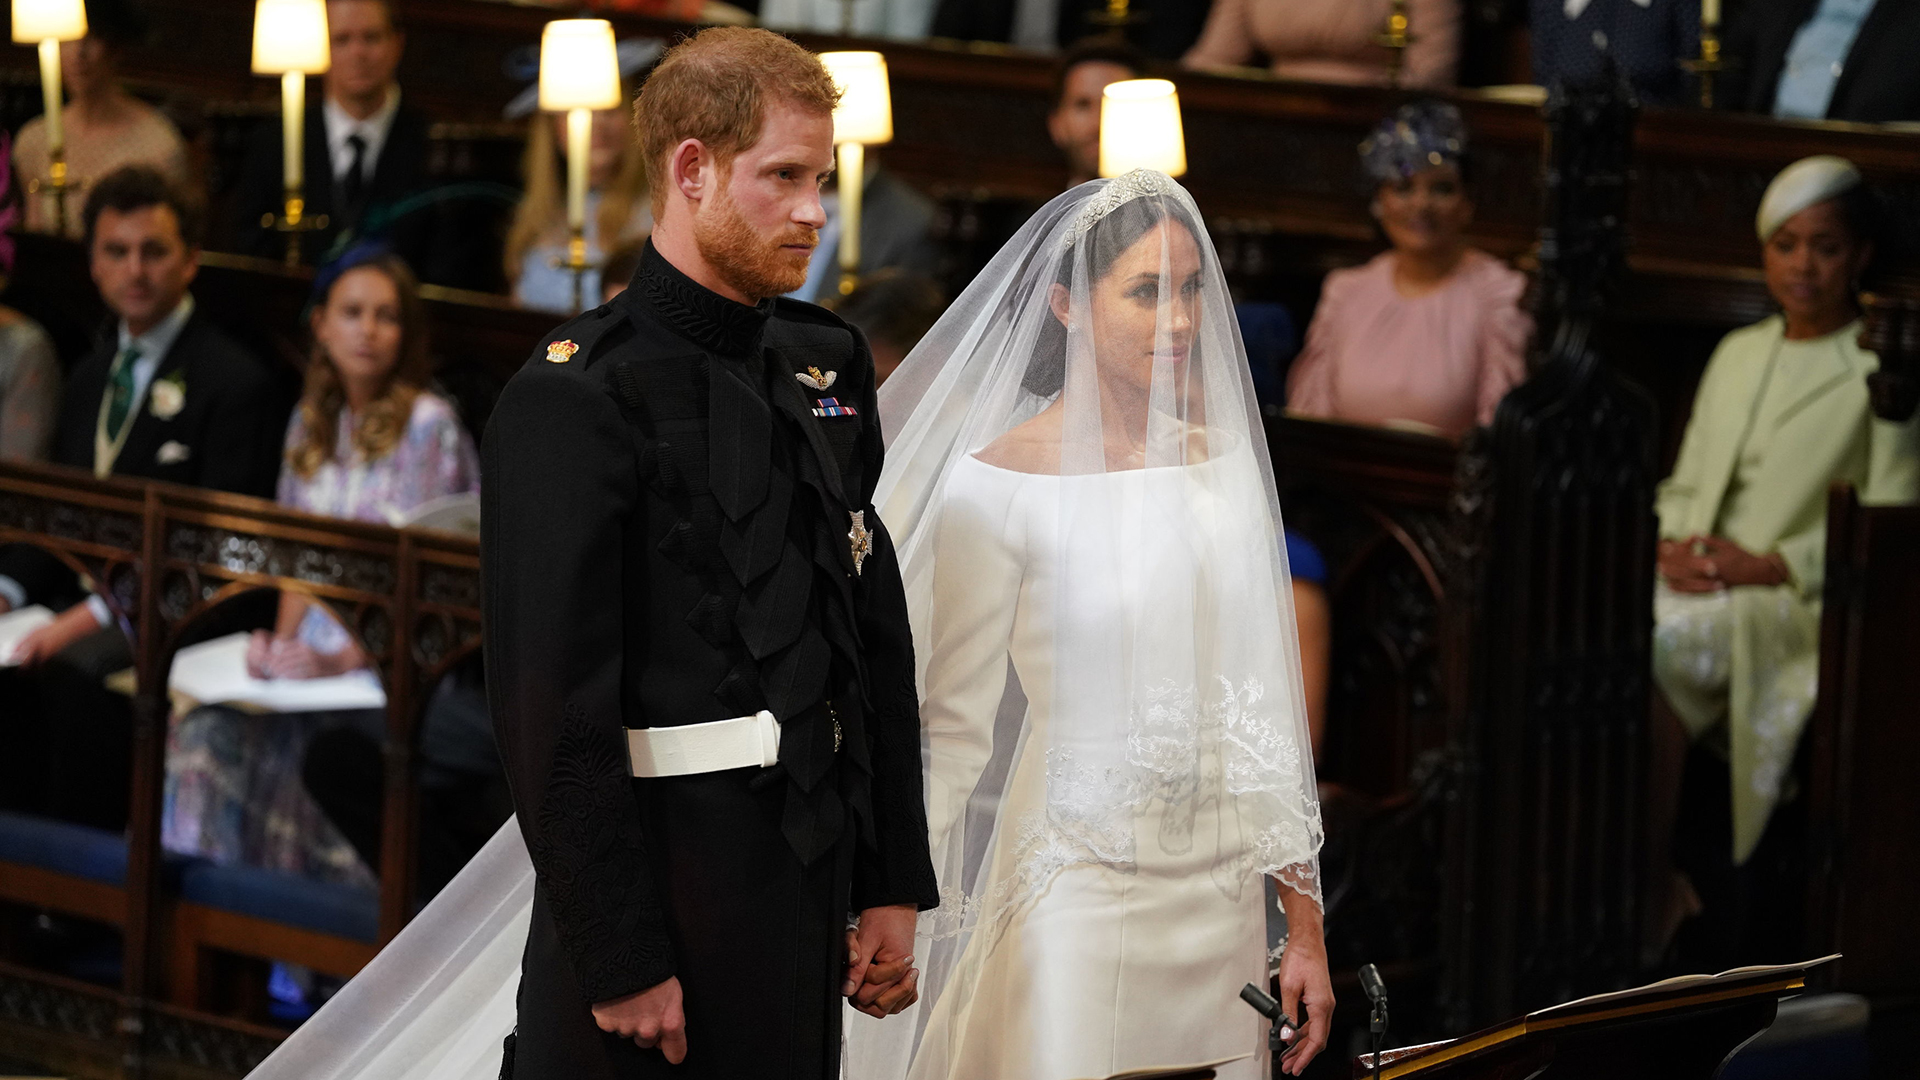 May 19, 2018: Meghan Markle Married Prince Harry at St. George's Chapel